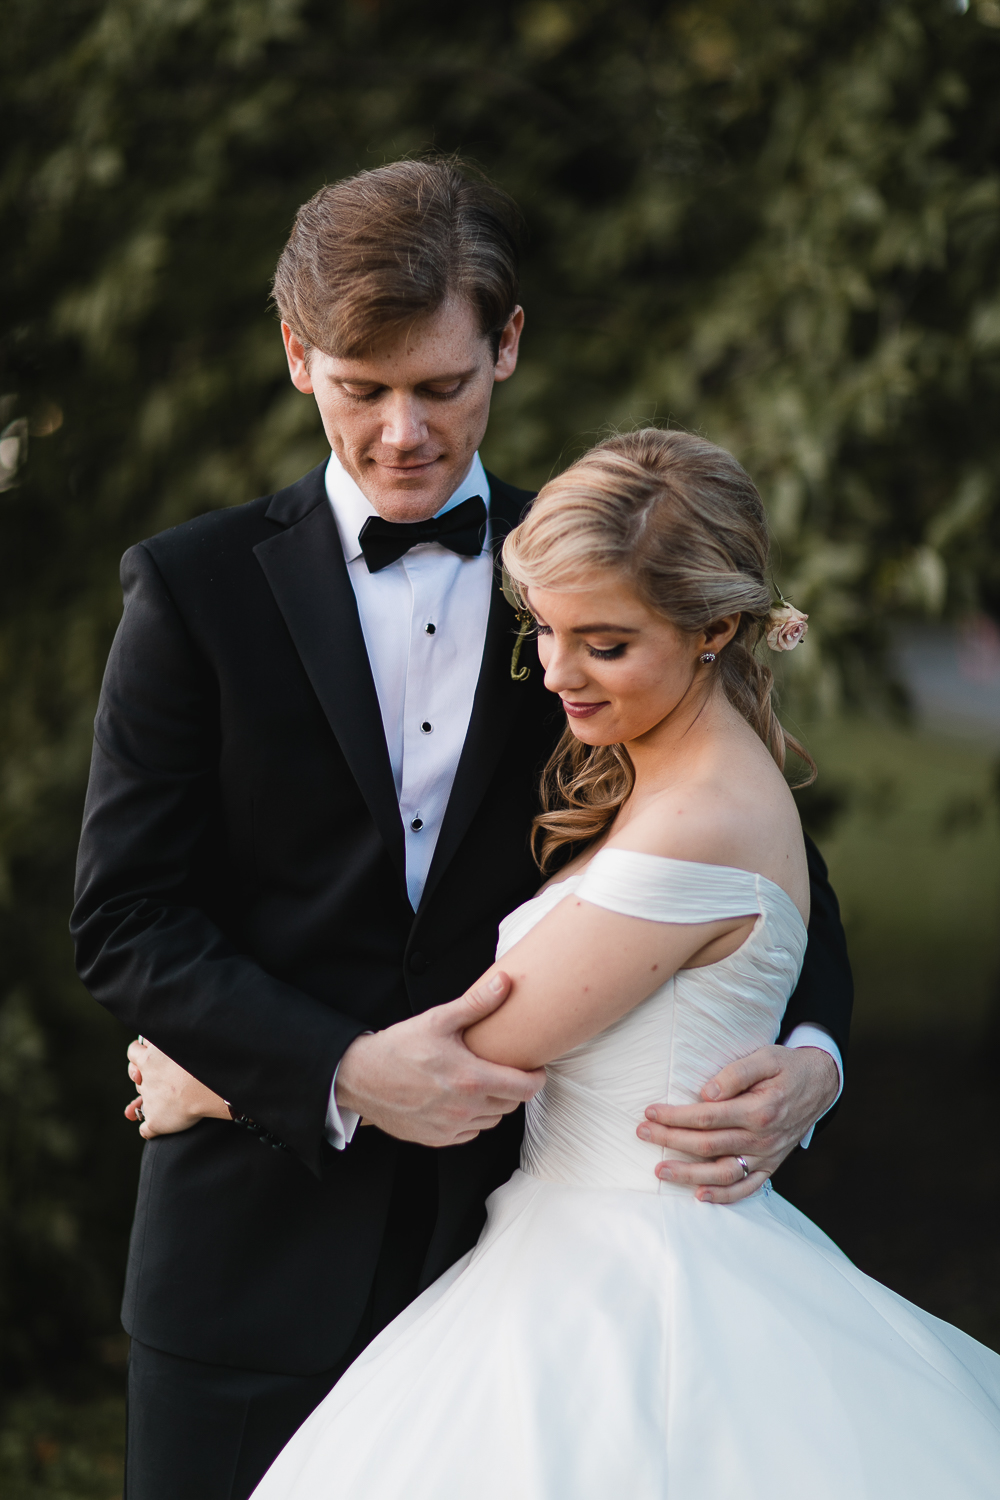 Bride and groom softly embracing each other.